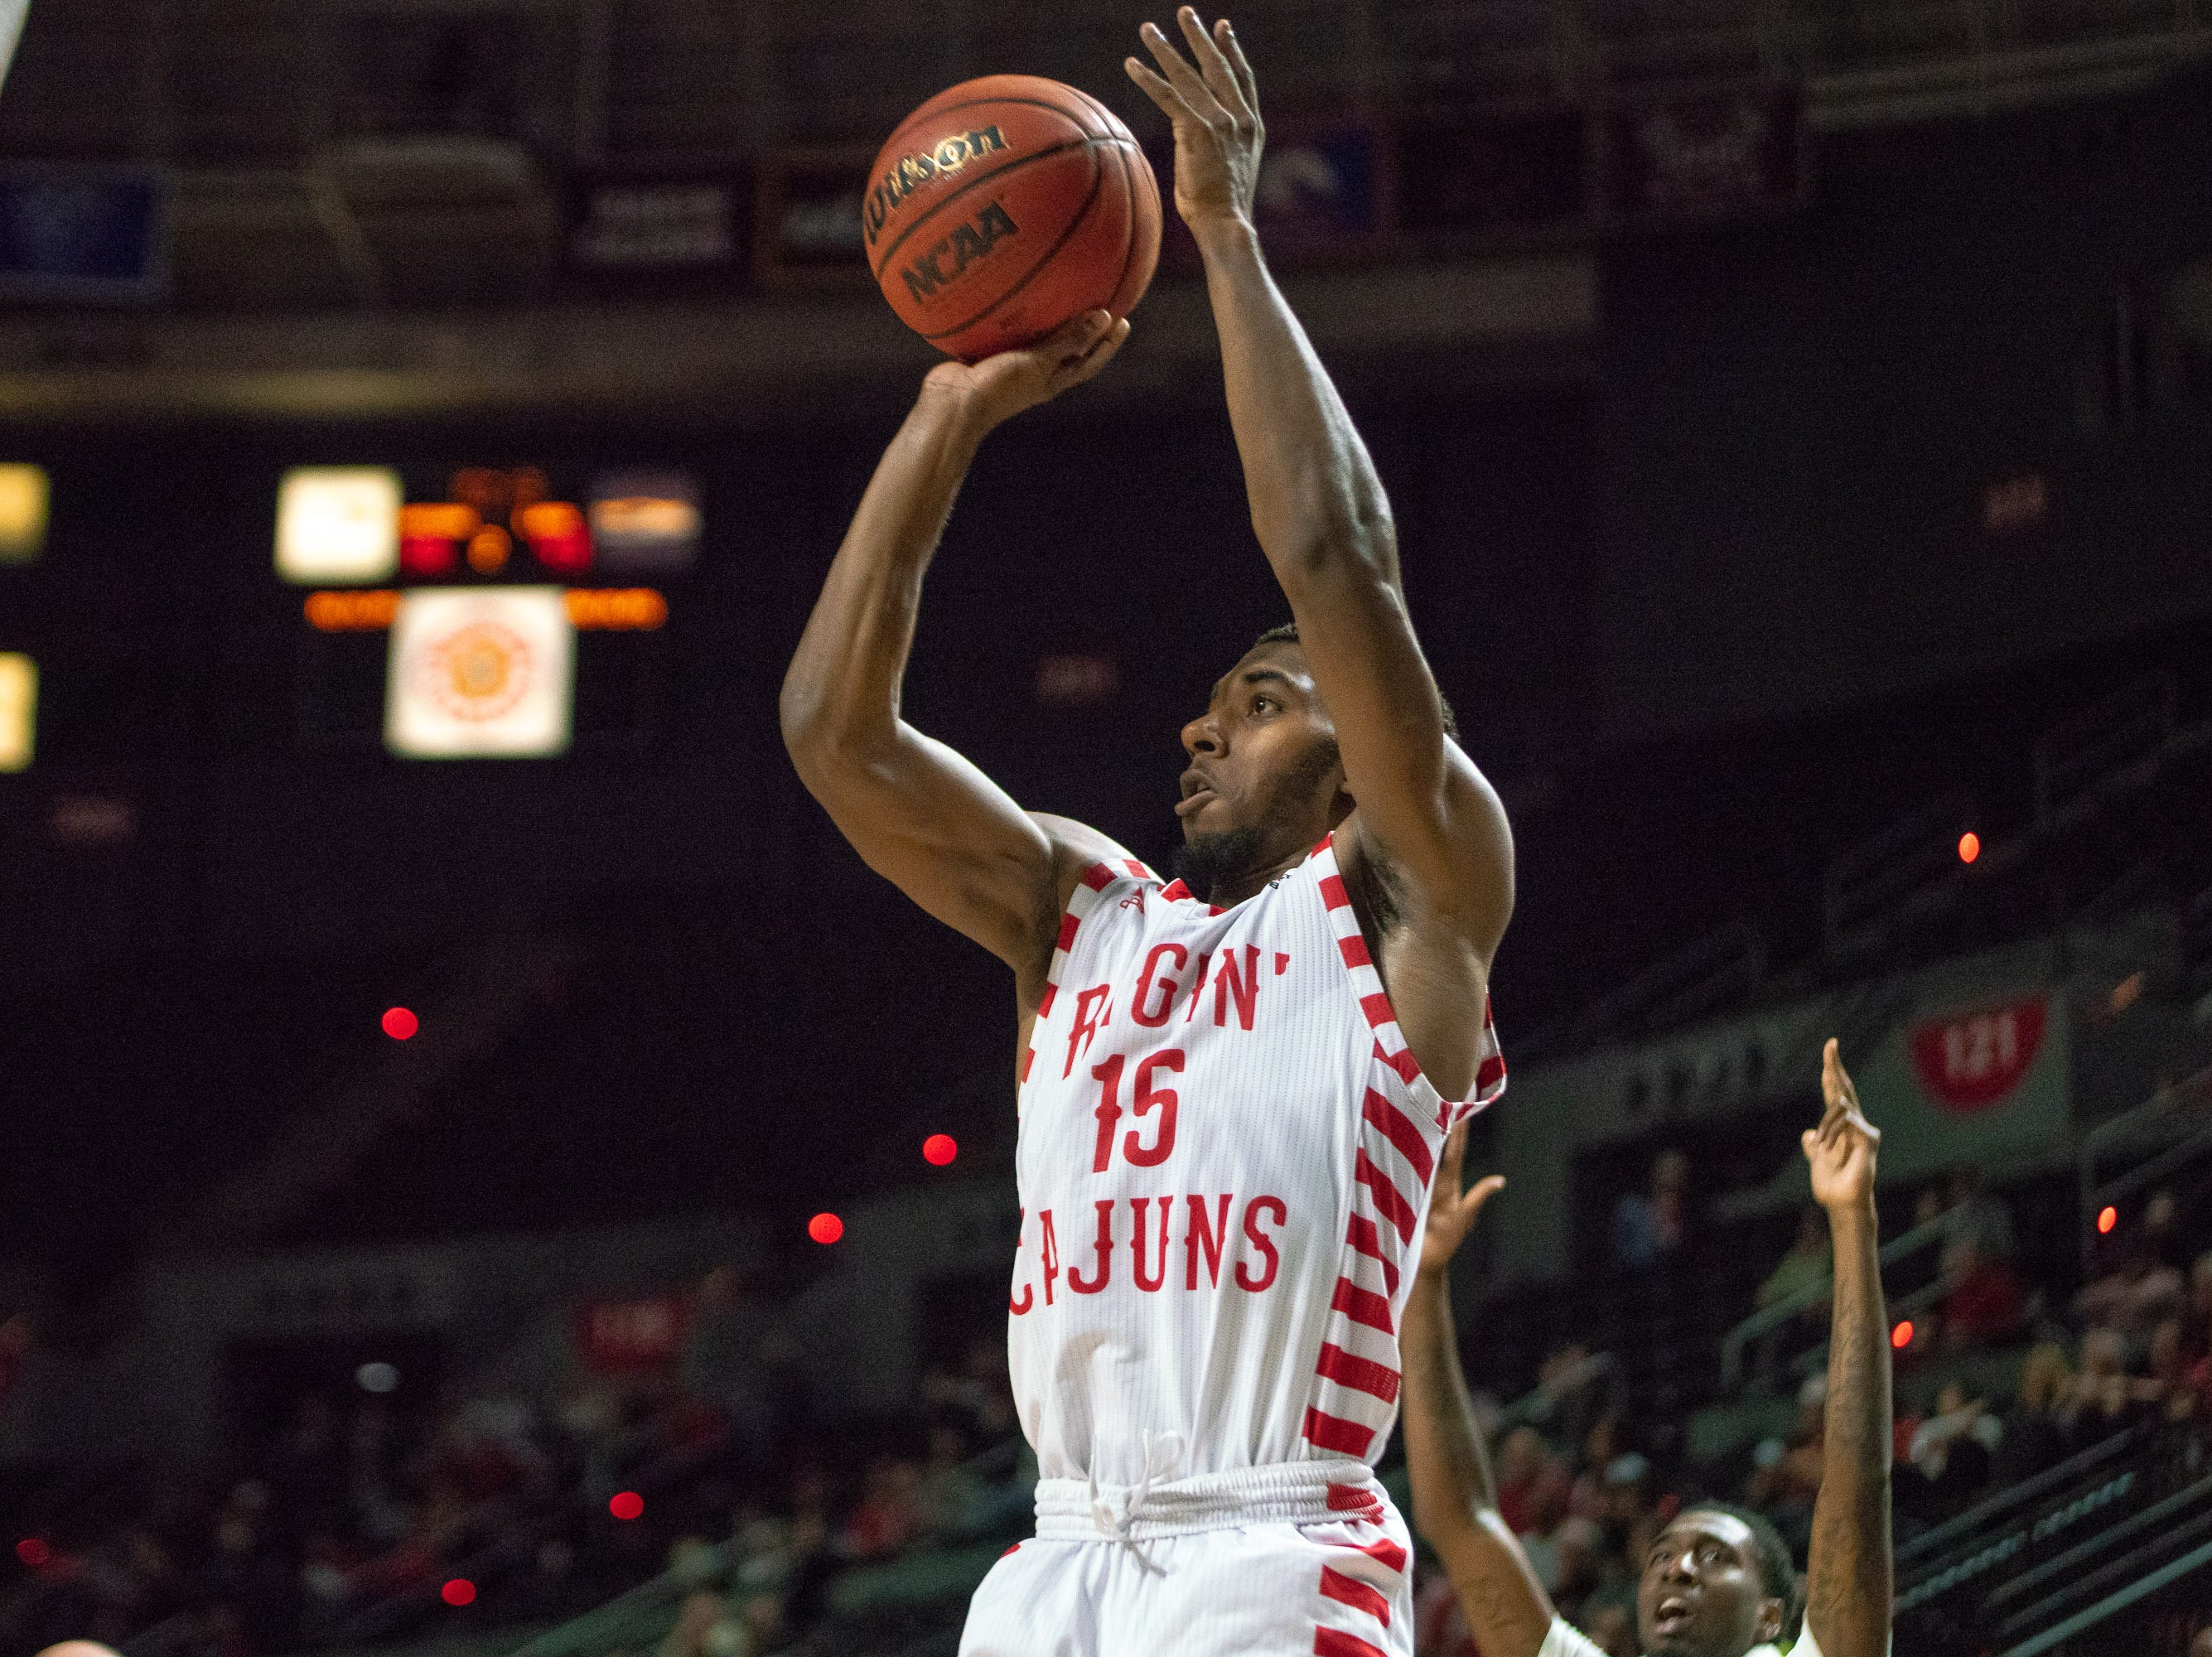 UL's P.J. Hardy shoots to score during the play as the Ragin' Cajuns take on the Little Rock Trojans at the Cajundome on January 5, 2019.